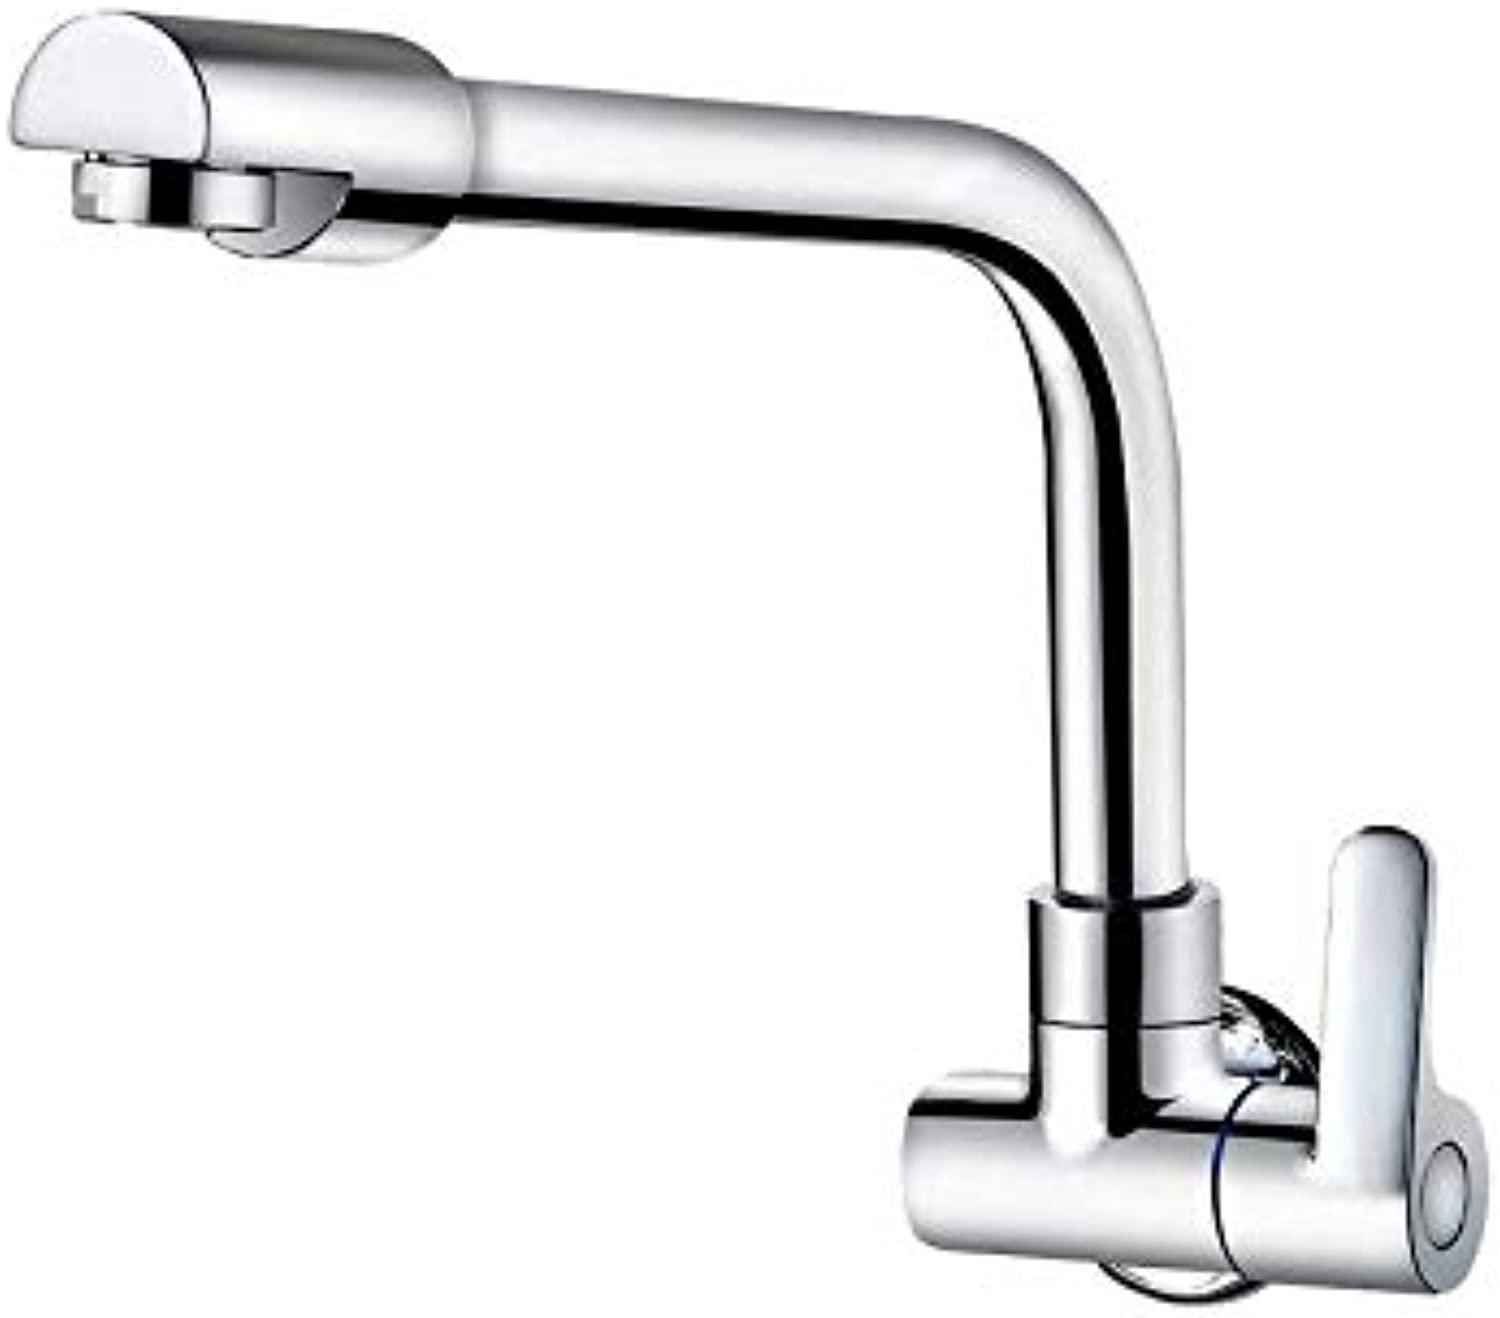 Water Tapfaucet Copper Body 360 Degree redation in-Wall Single Cold Kitchen Faucet Washbasin Mixer(17.5  20Cm) (Size   17.5  20Cm)